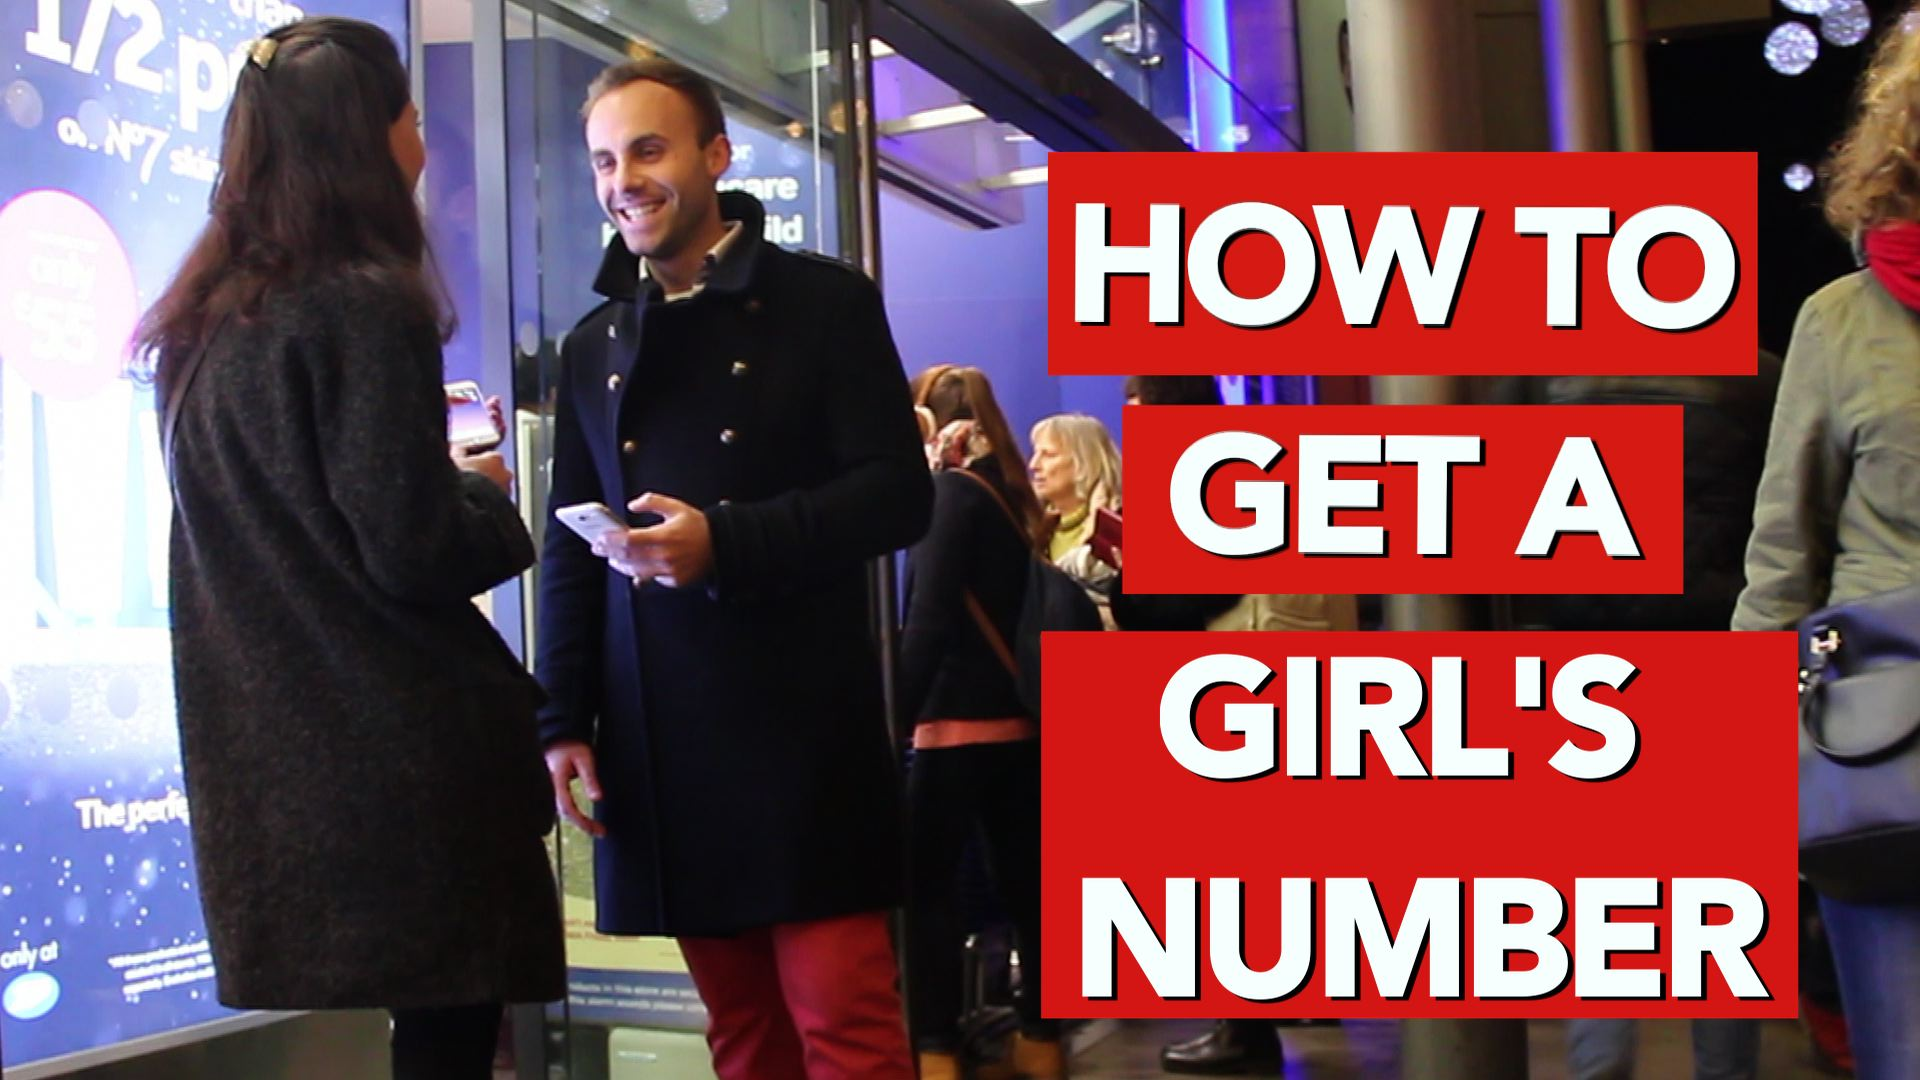 How to get a girls number